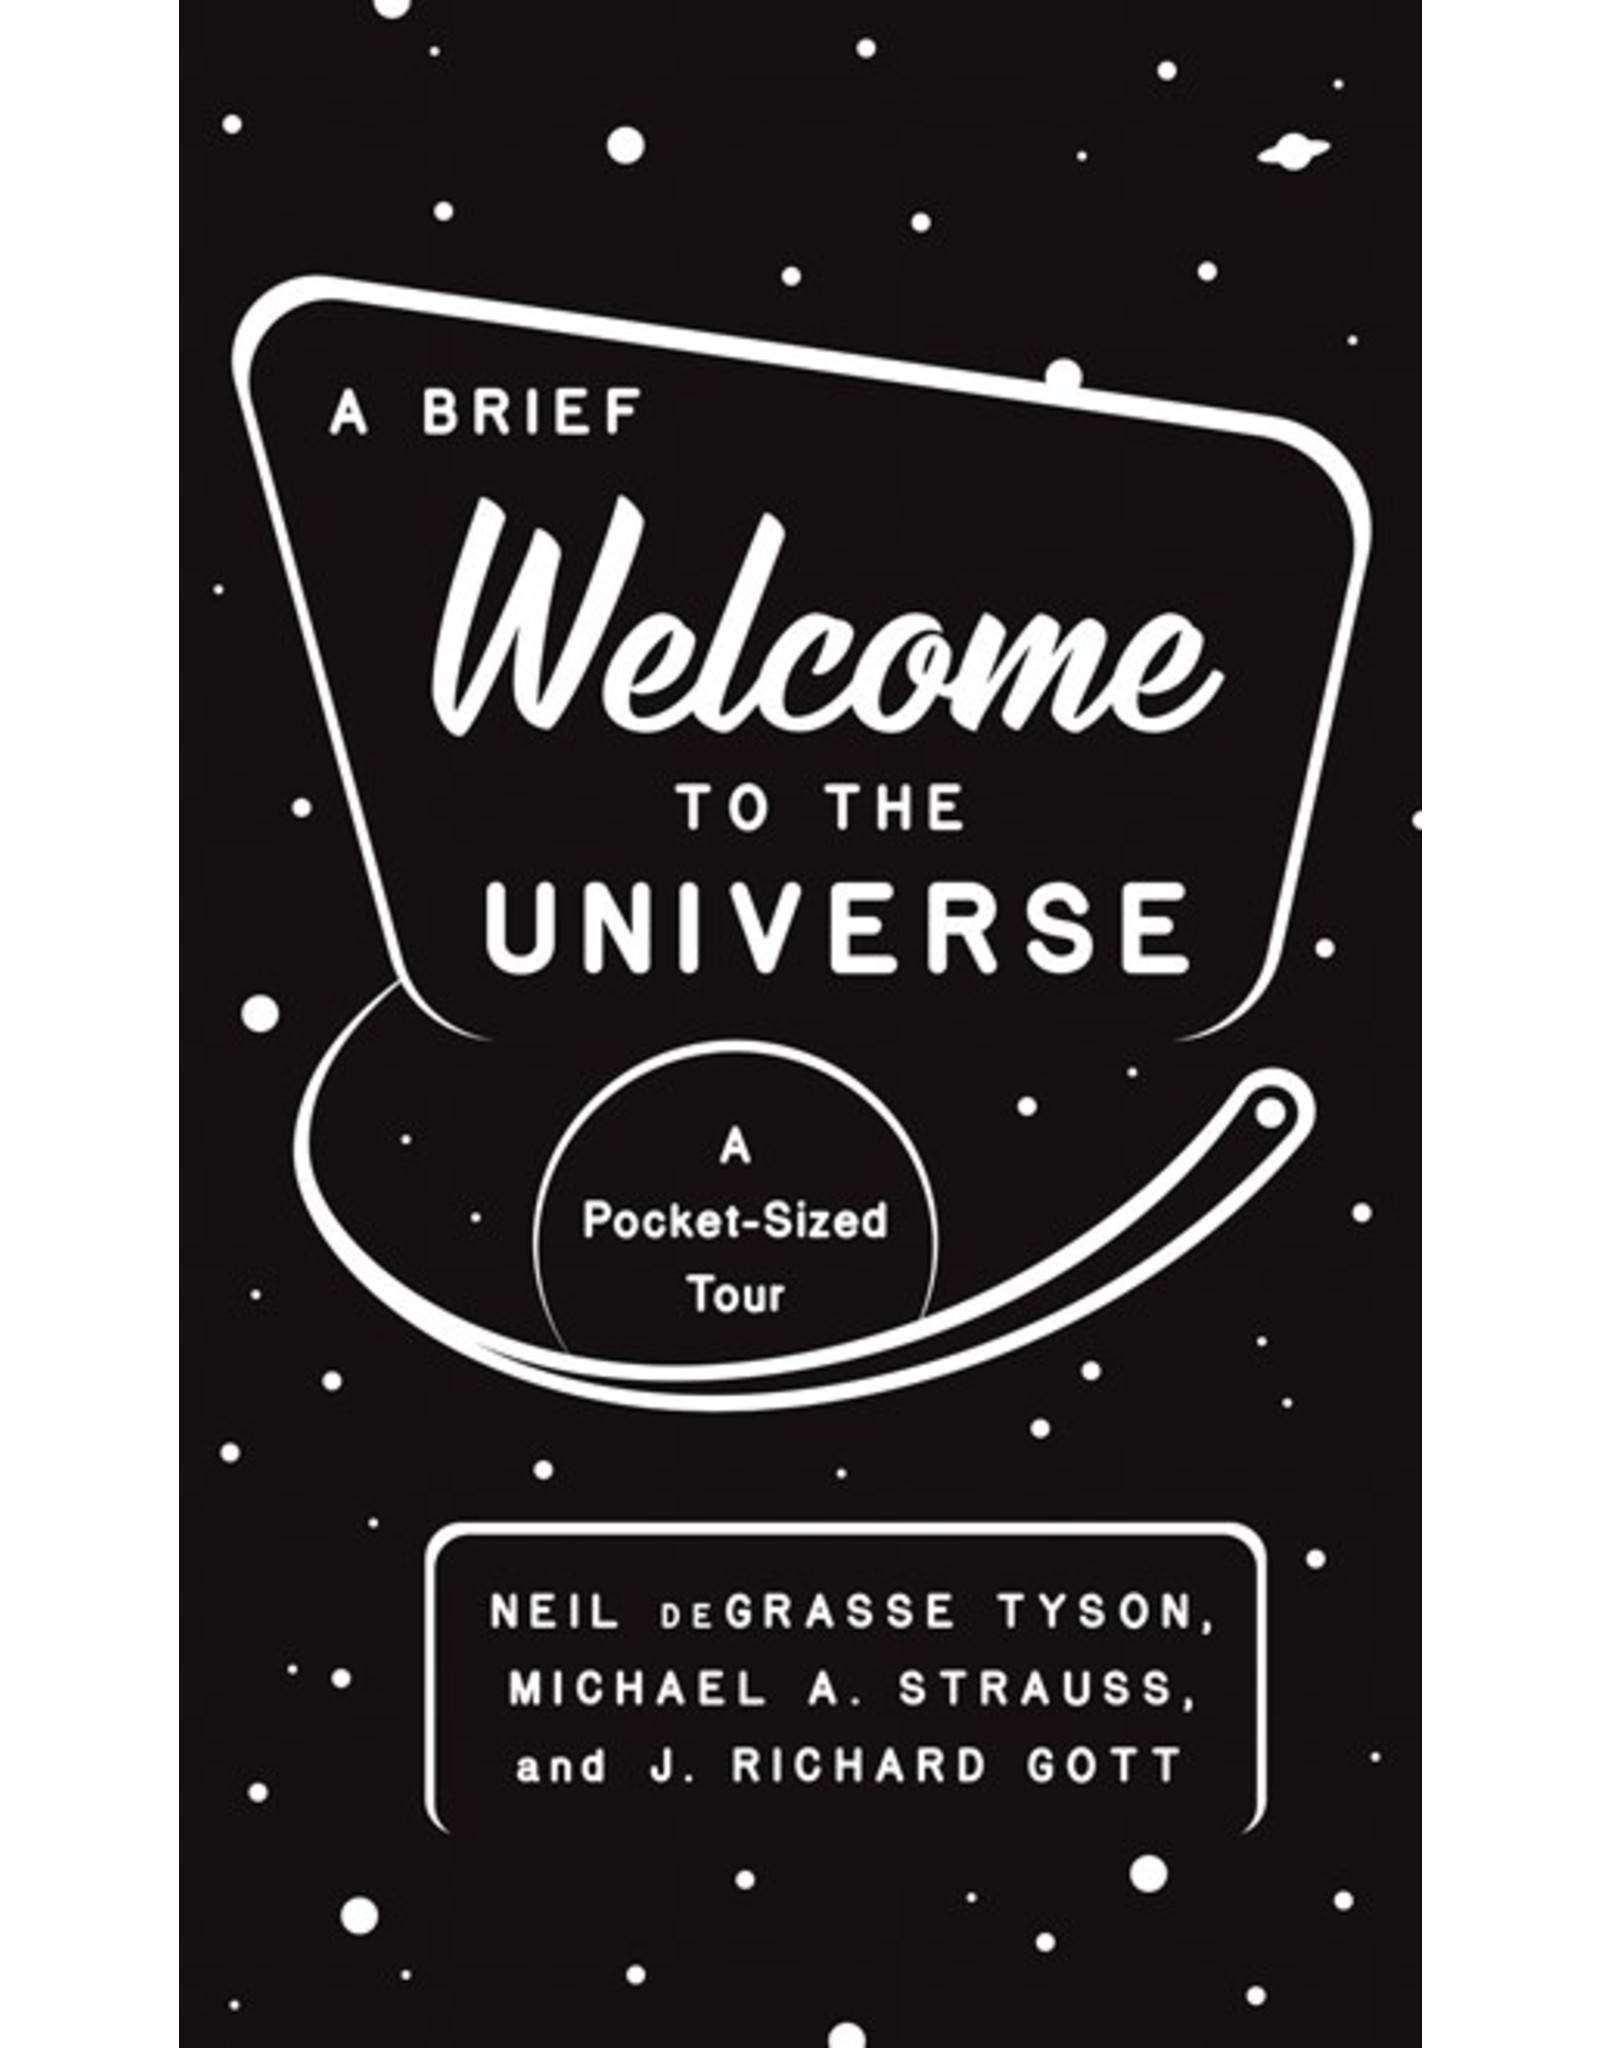 Books A Brief Welcome to the Universe : A Pocket-Sized Tour by Neil DeGrasse Tyson, Michael A Strauss and J. Richard Gott